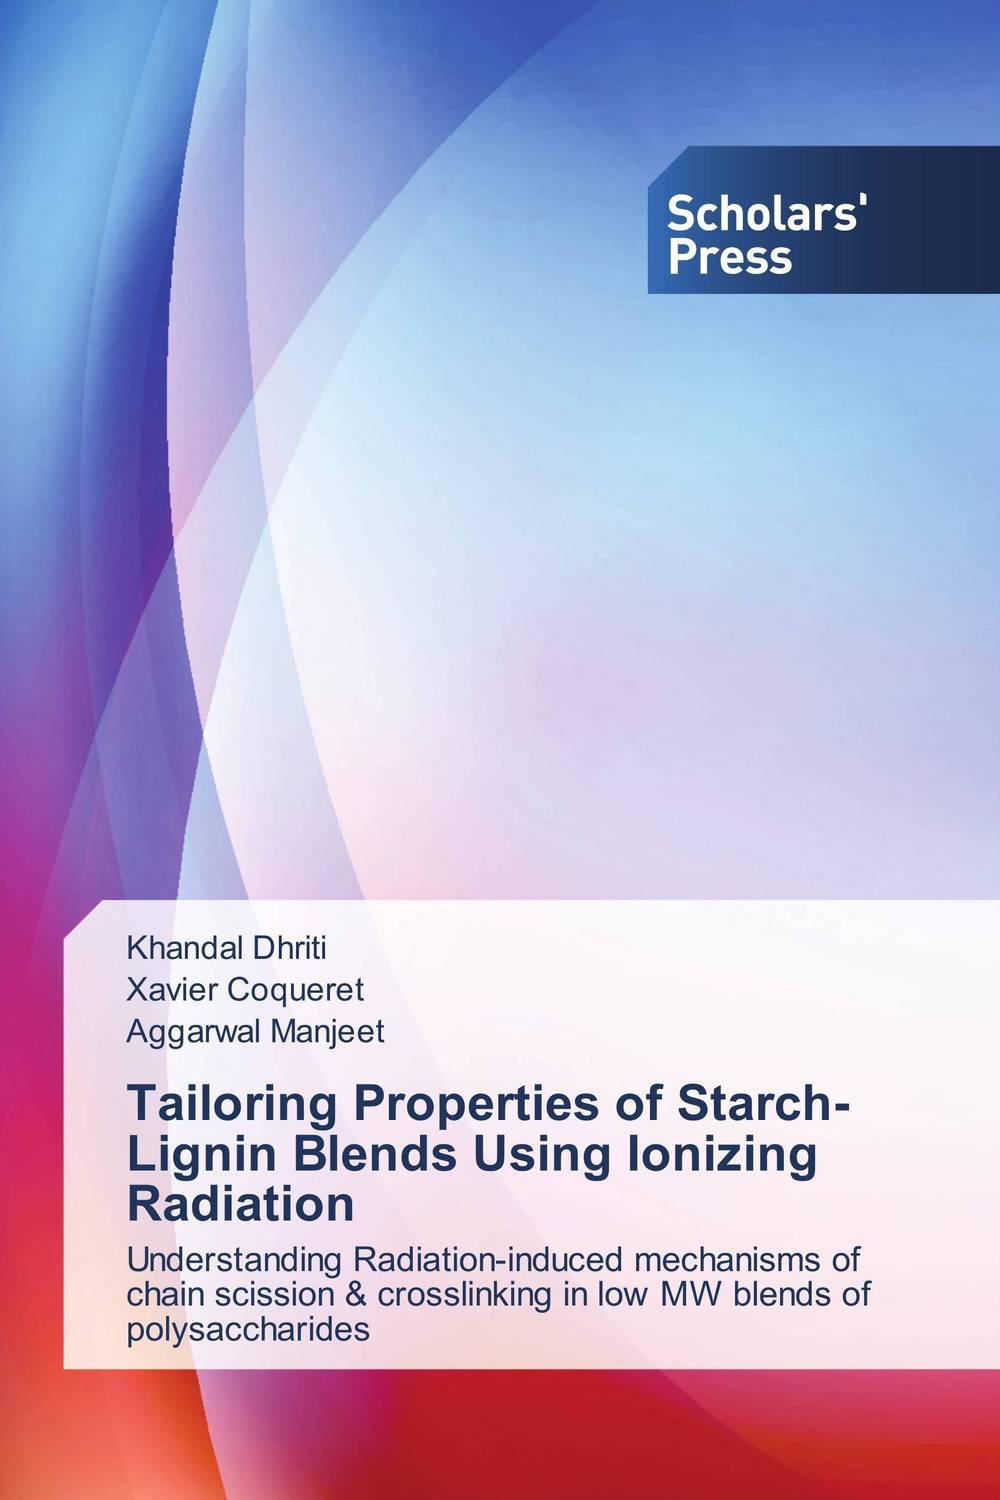 Tailoring Properties of Starch-Lignin Blends Using Ionizing Radiation hina malik quantification of mechanical properties of mwcnts by sem analysis